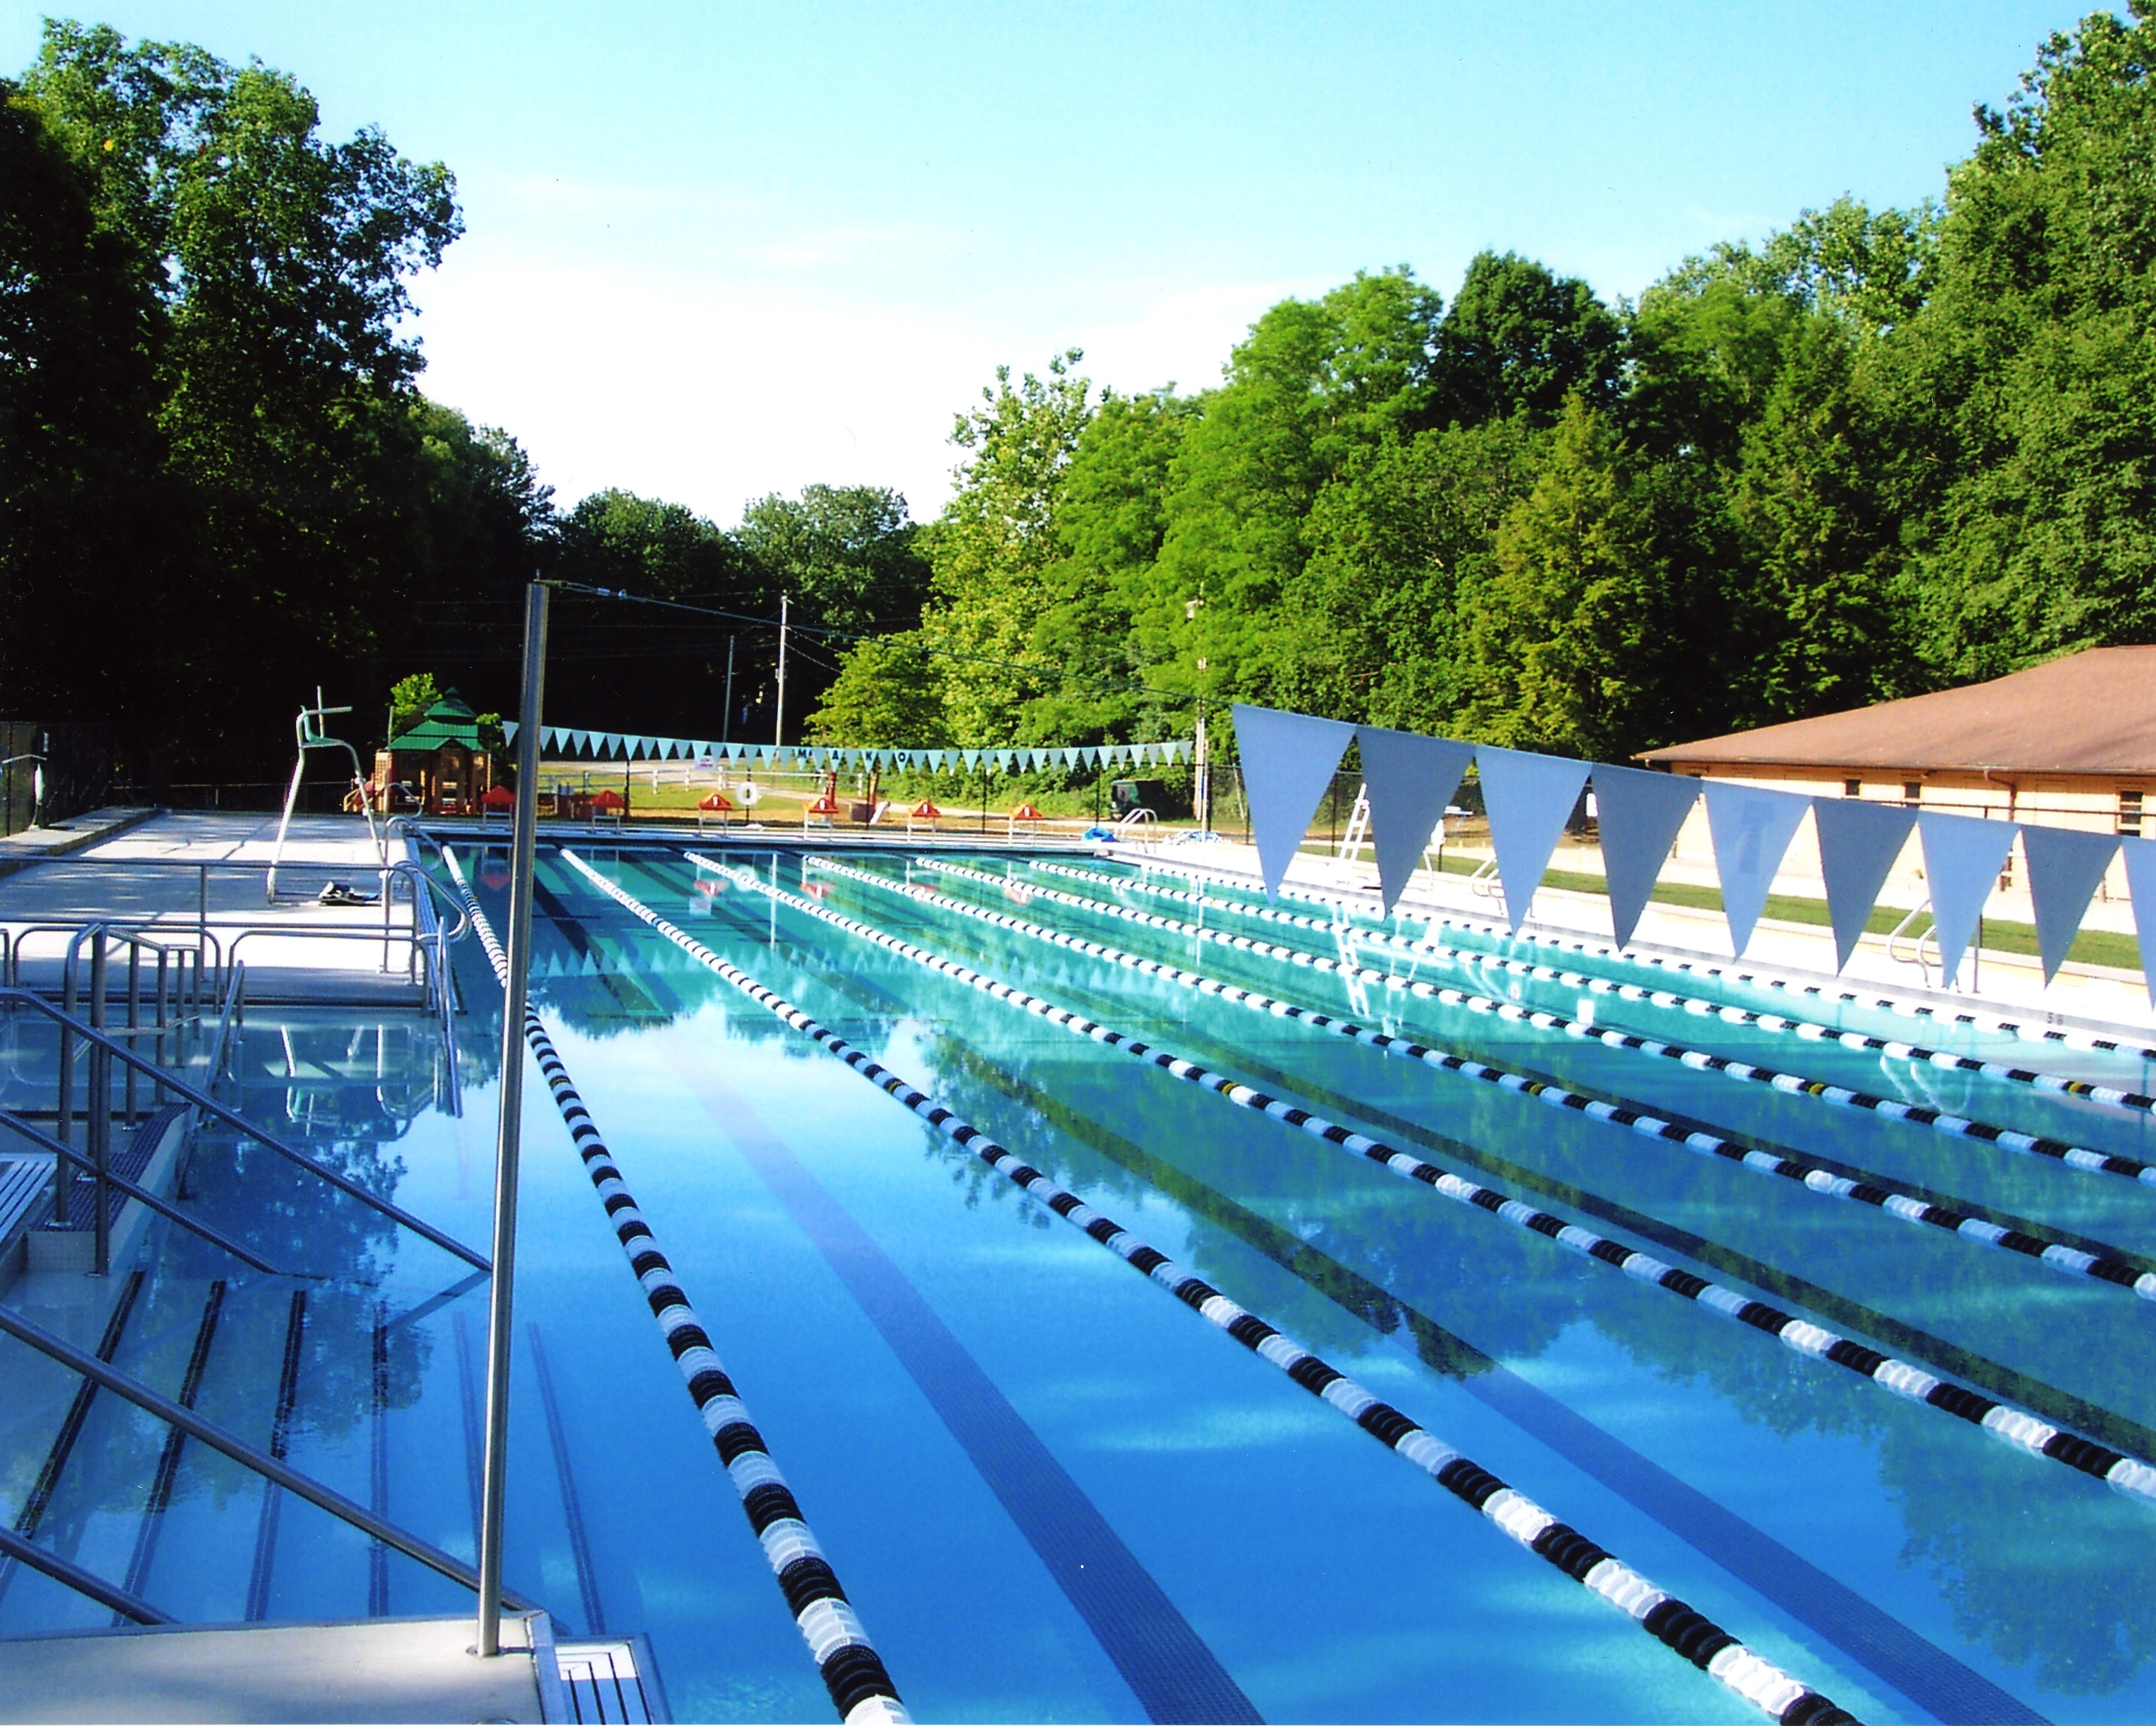 YMCA Swimming Pool, Brookfield, CT